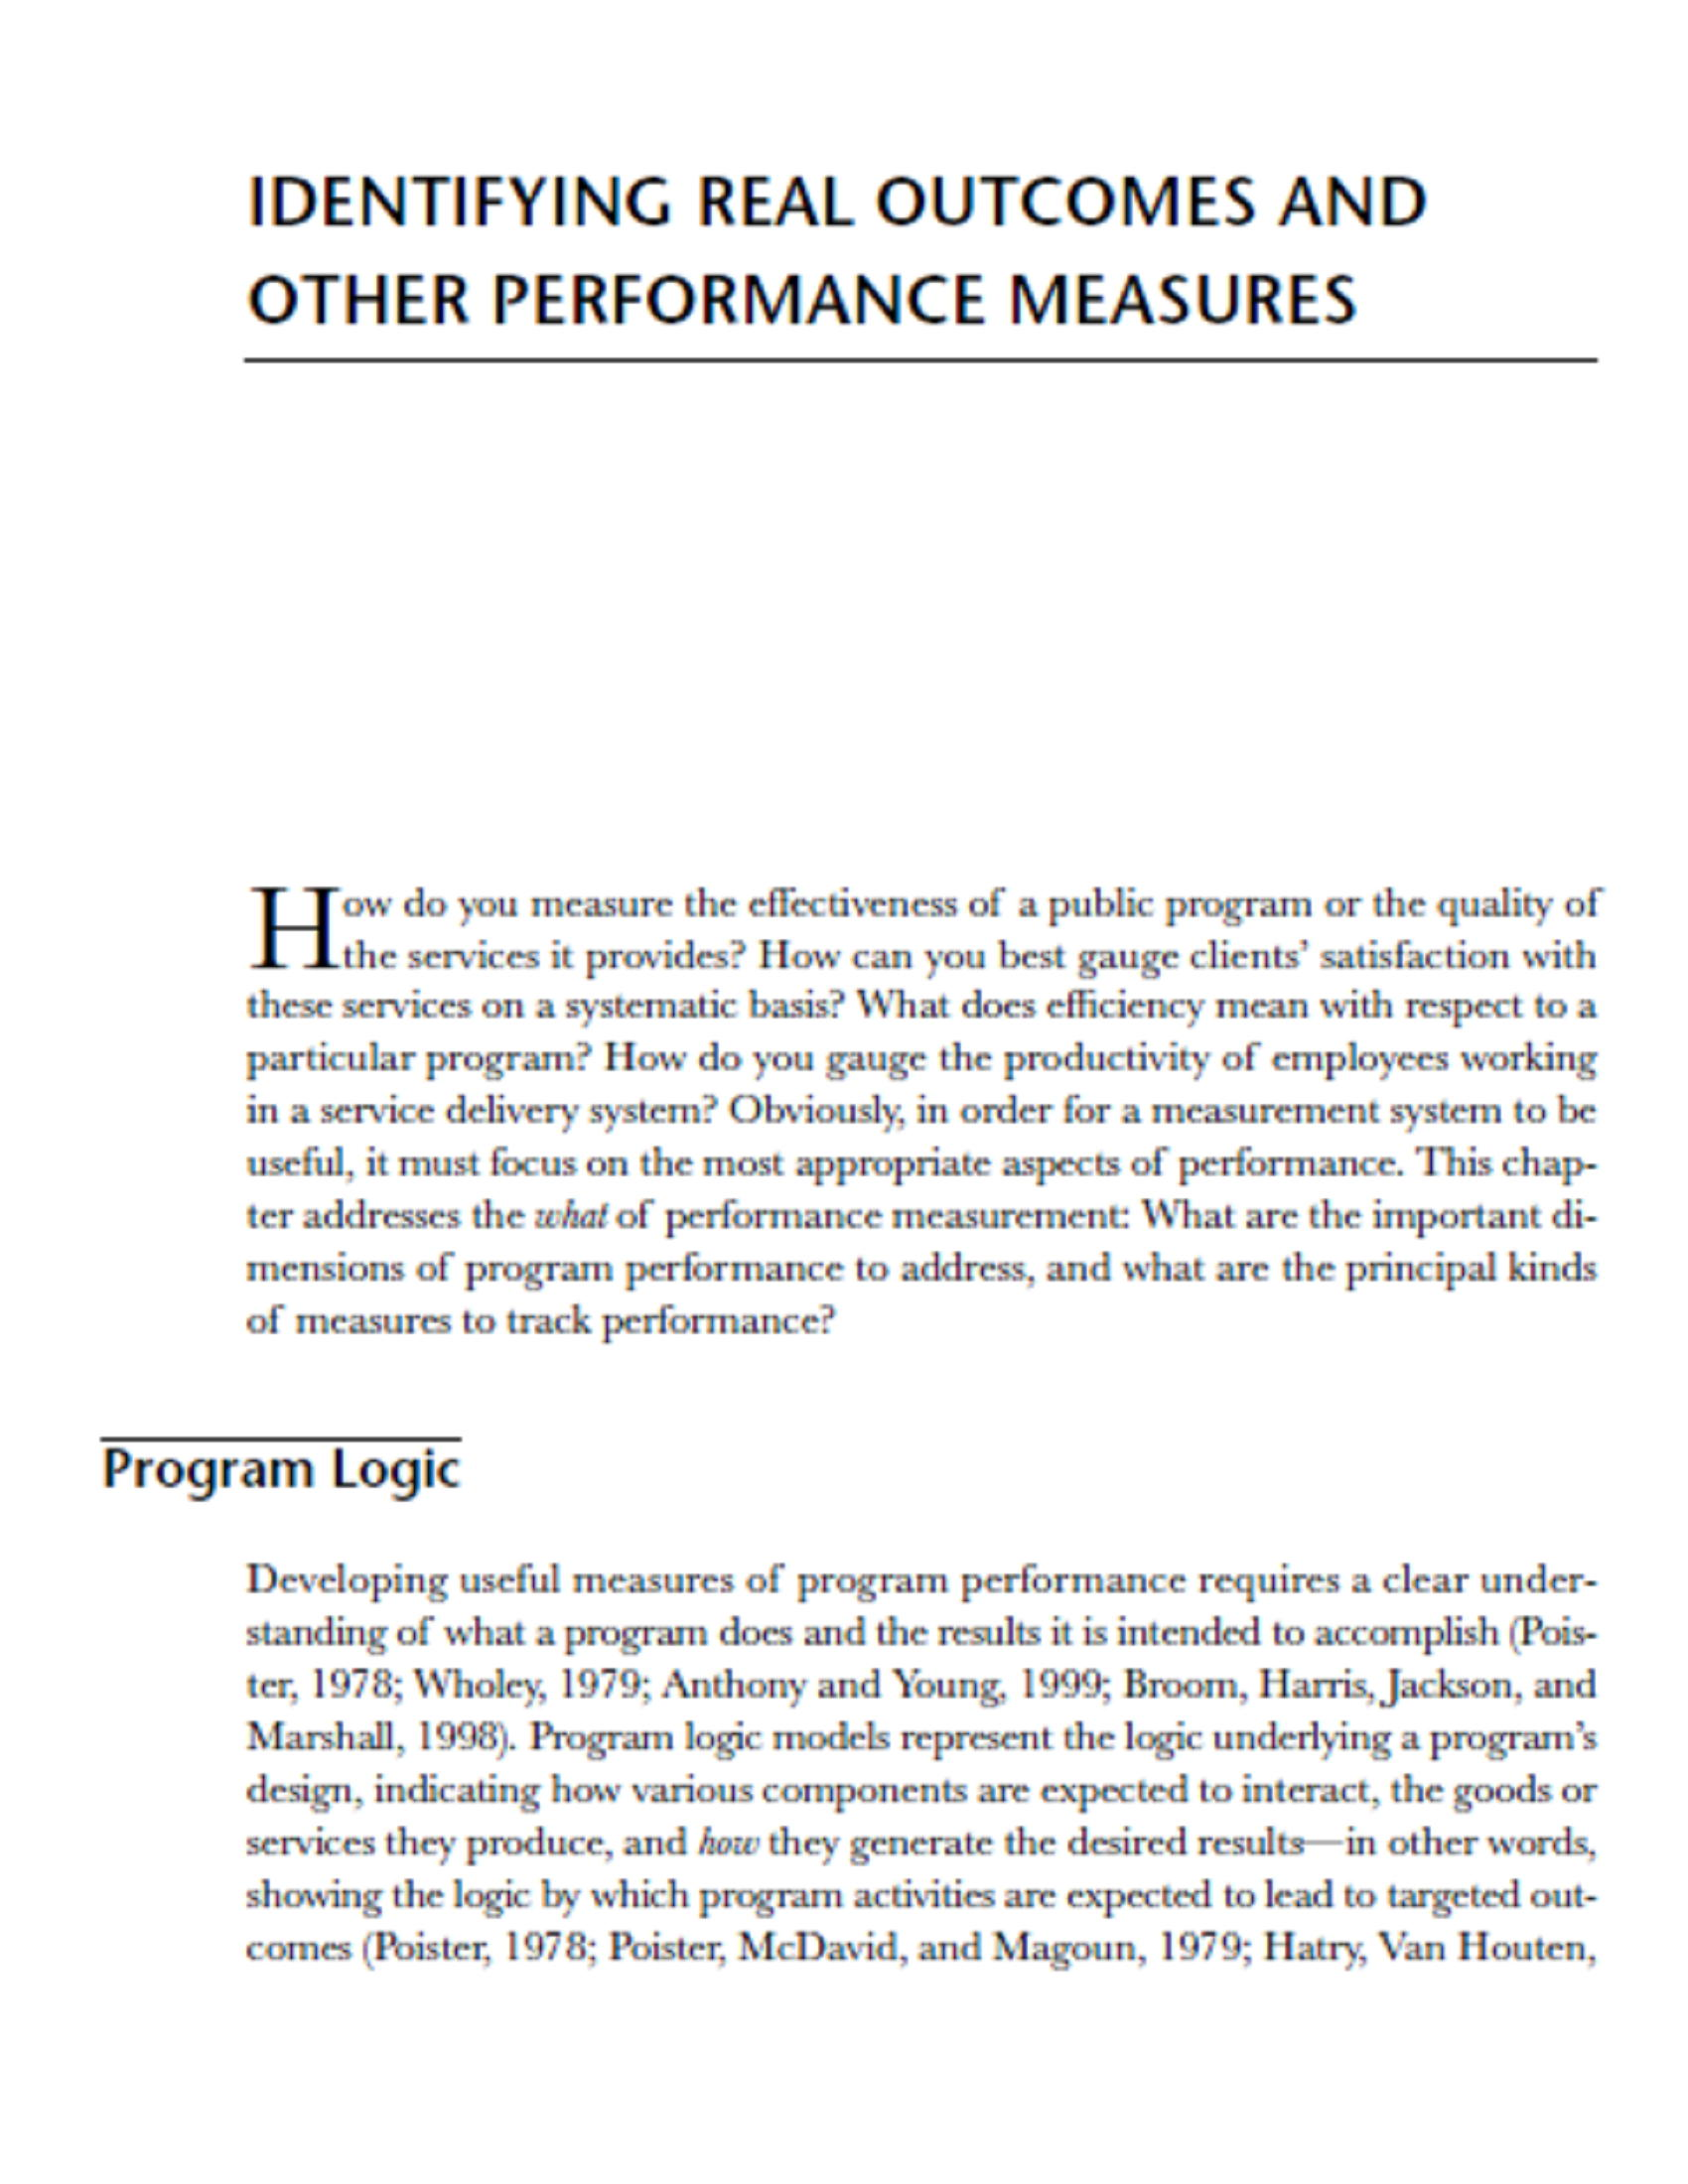 IDENTIFYING REAL OUTCOMES AND OTHER PERFORMANCE MEASURES 5